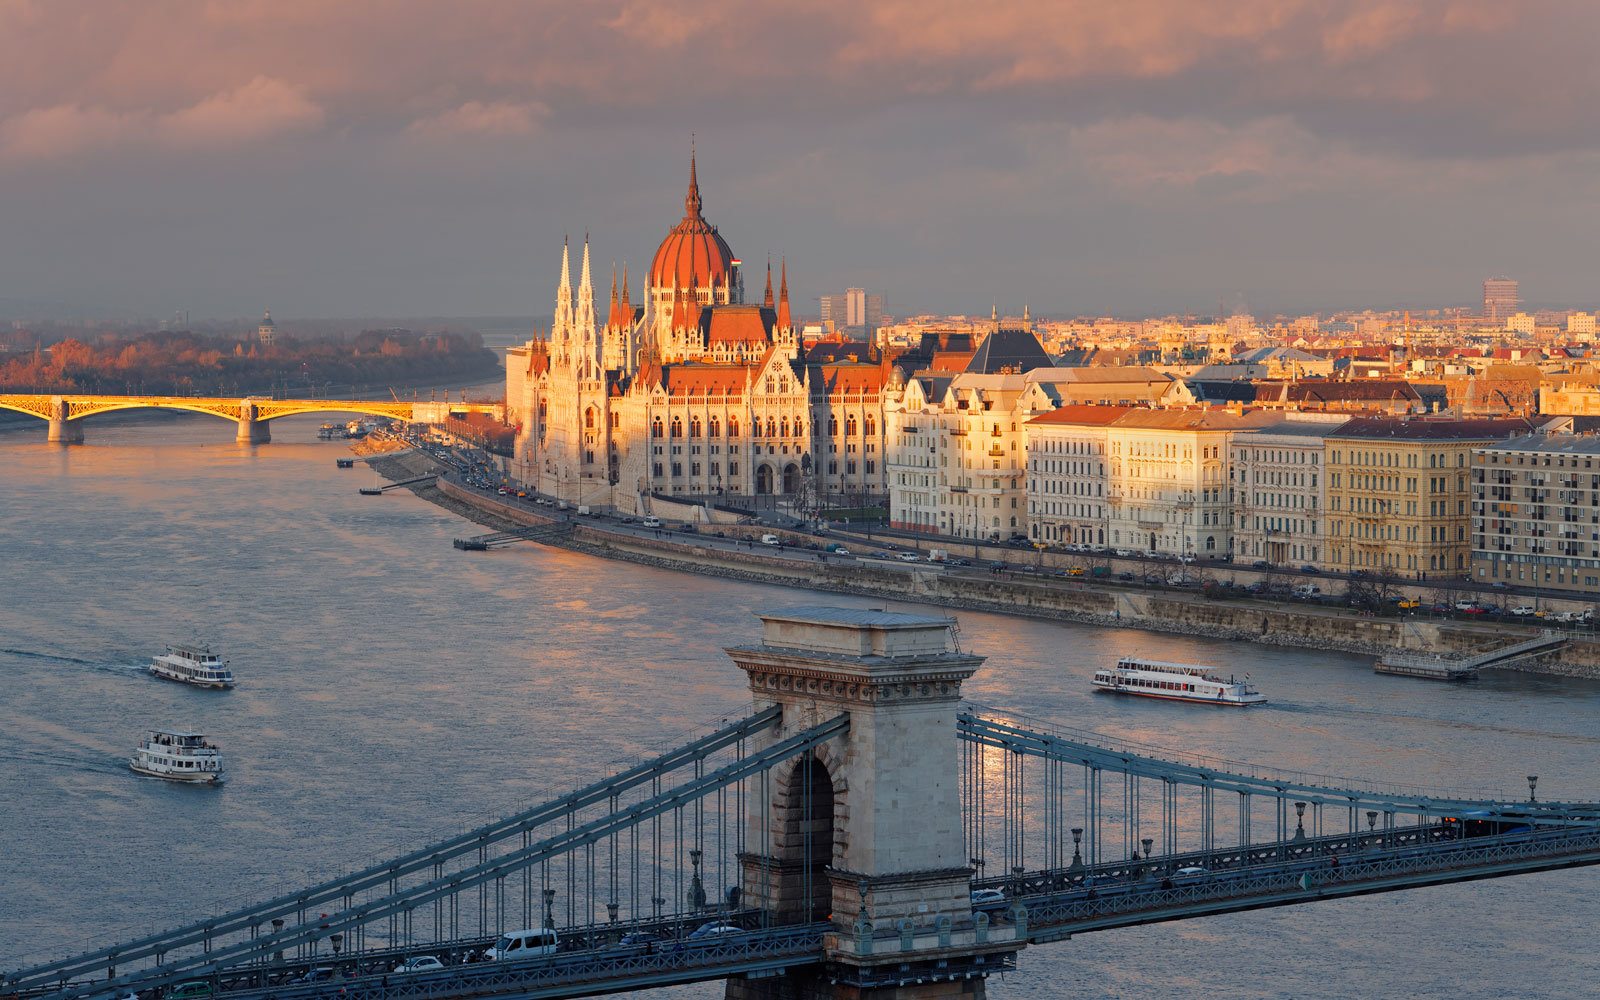 sunset on the Danube in Budapest, Hungary